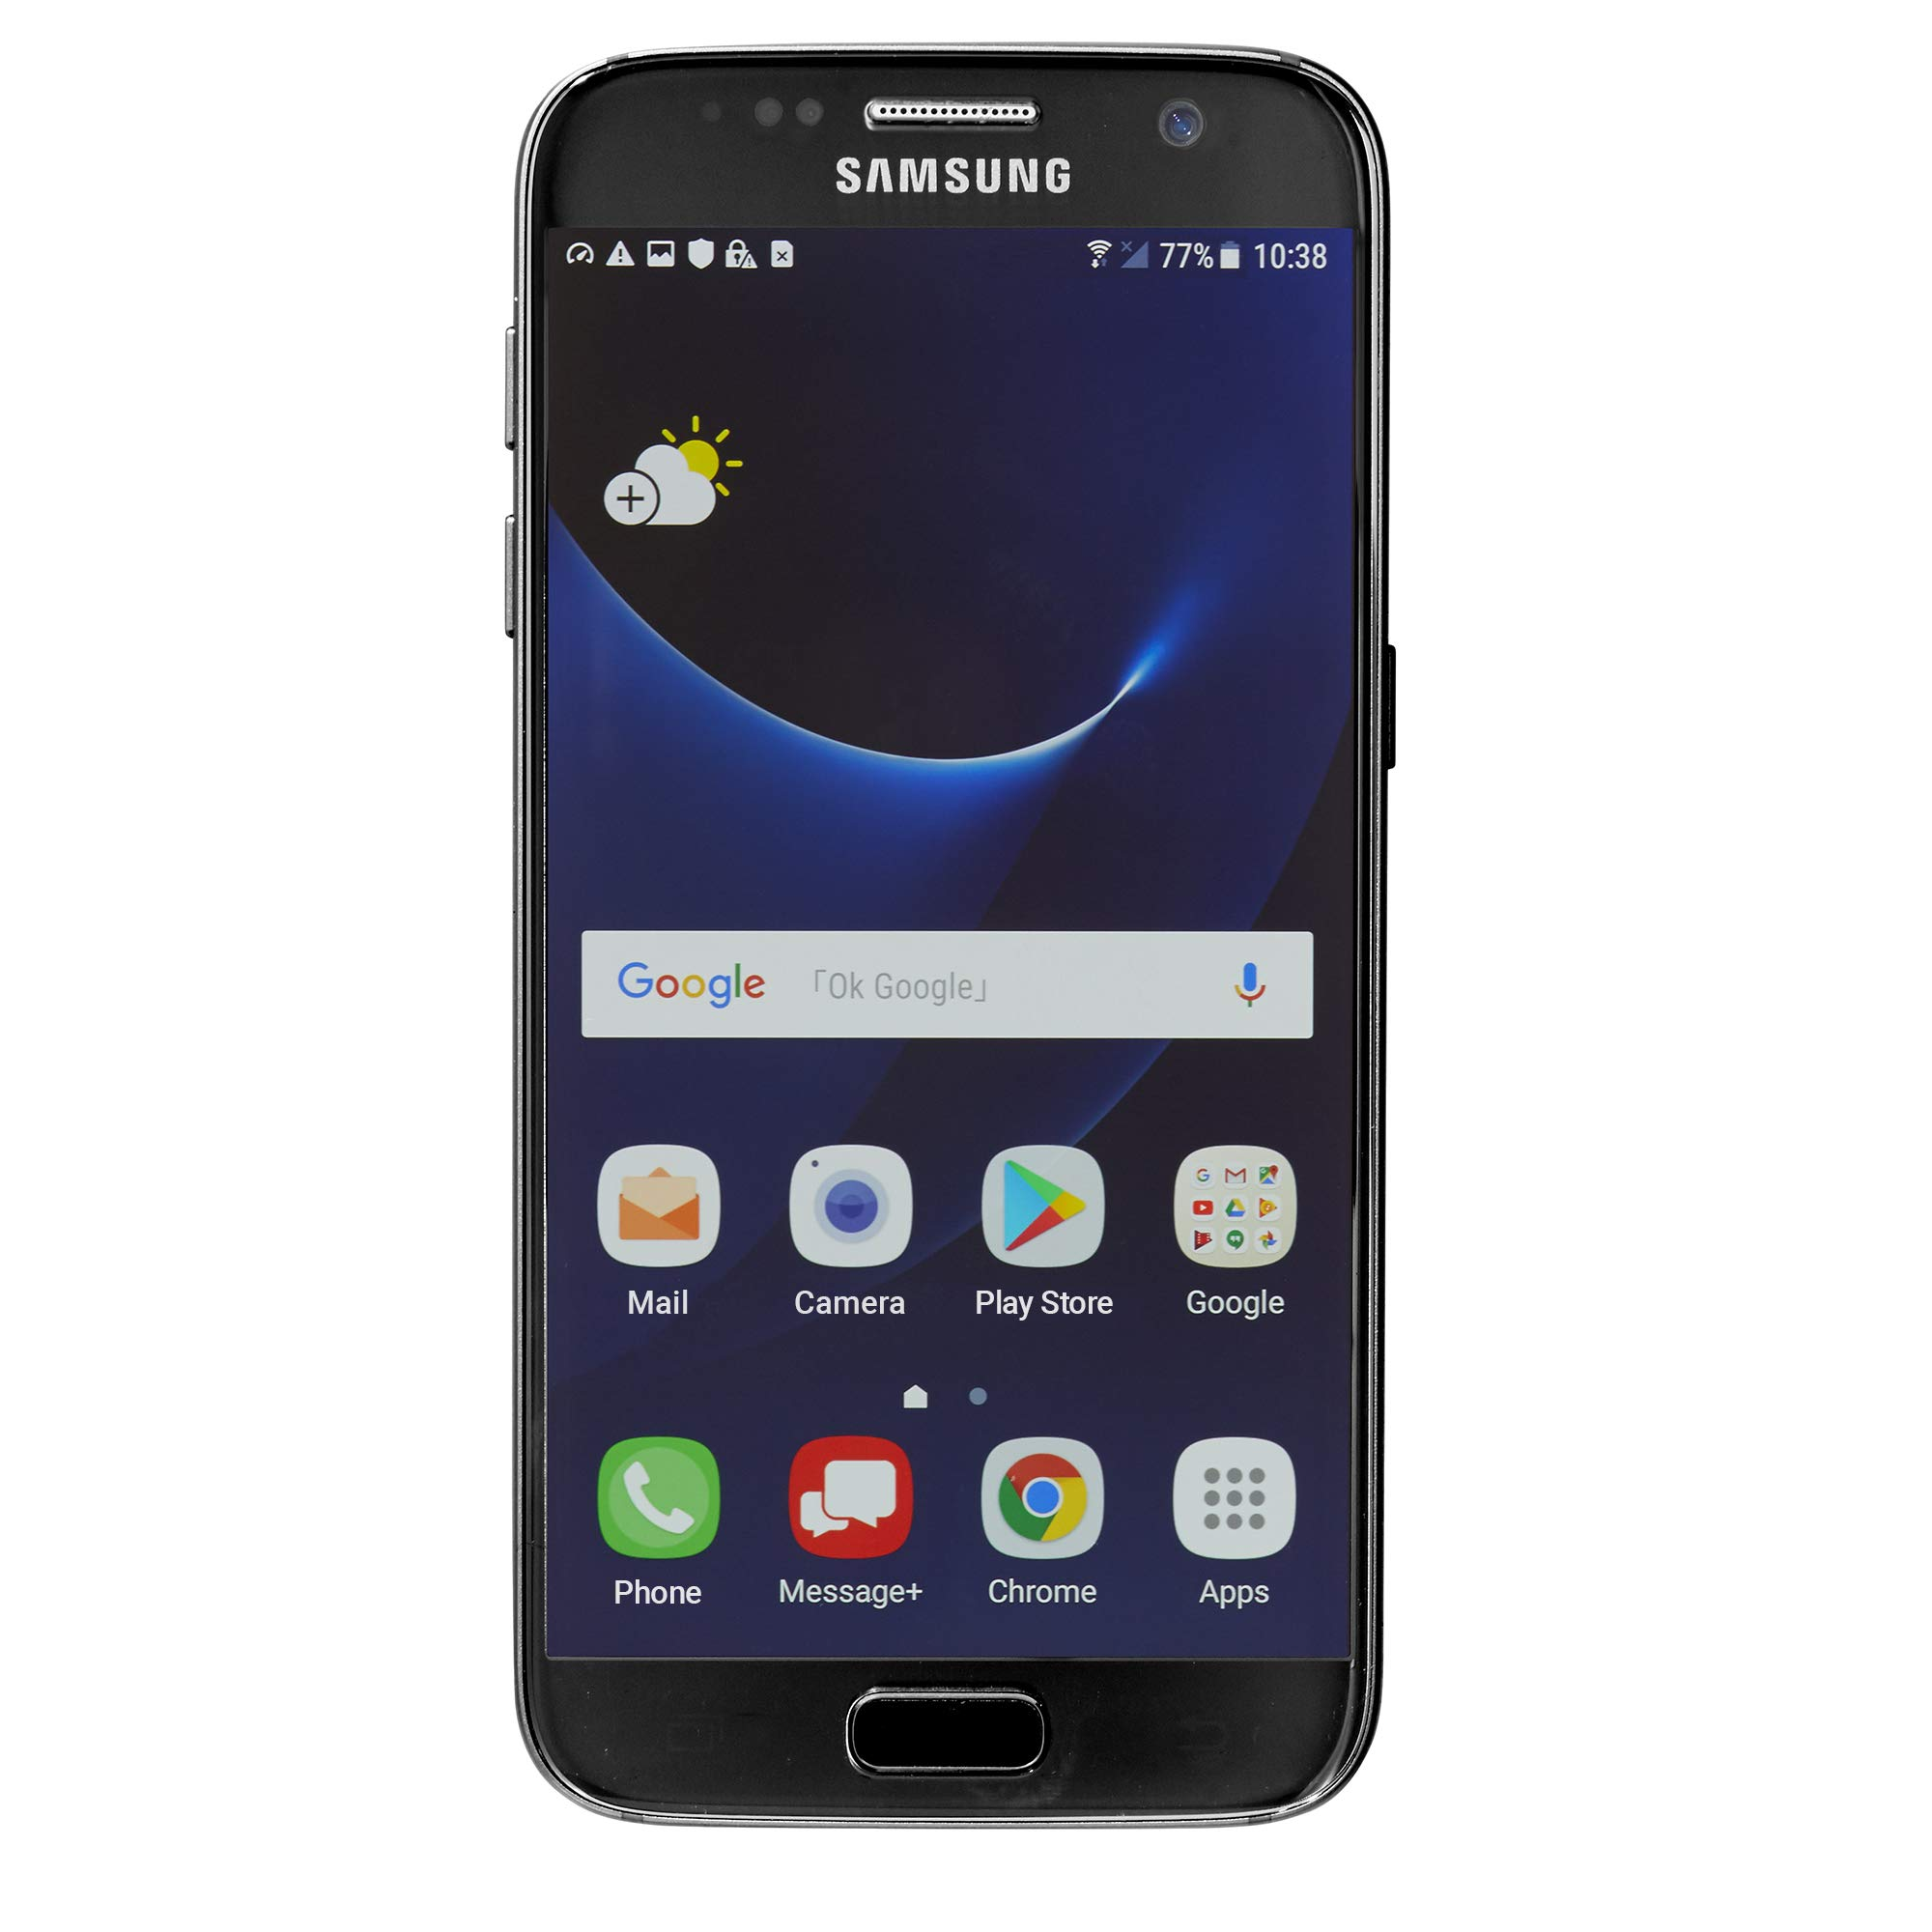 Samsung Galaxy S7 G930V 32GB, Verizon, Black Onyx, Unlocked Smartphones (Renewed) by Samsung